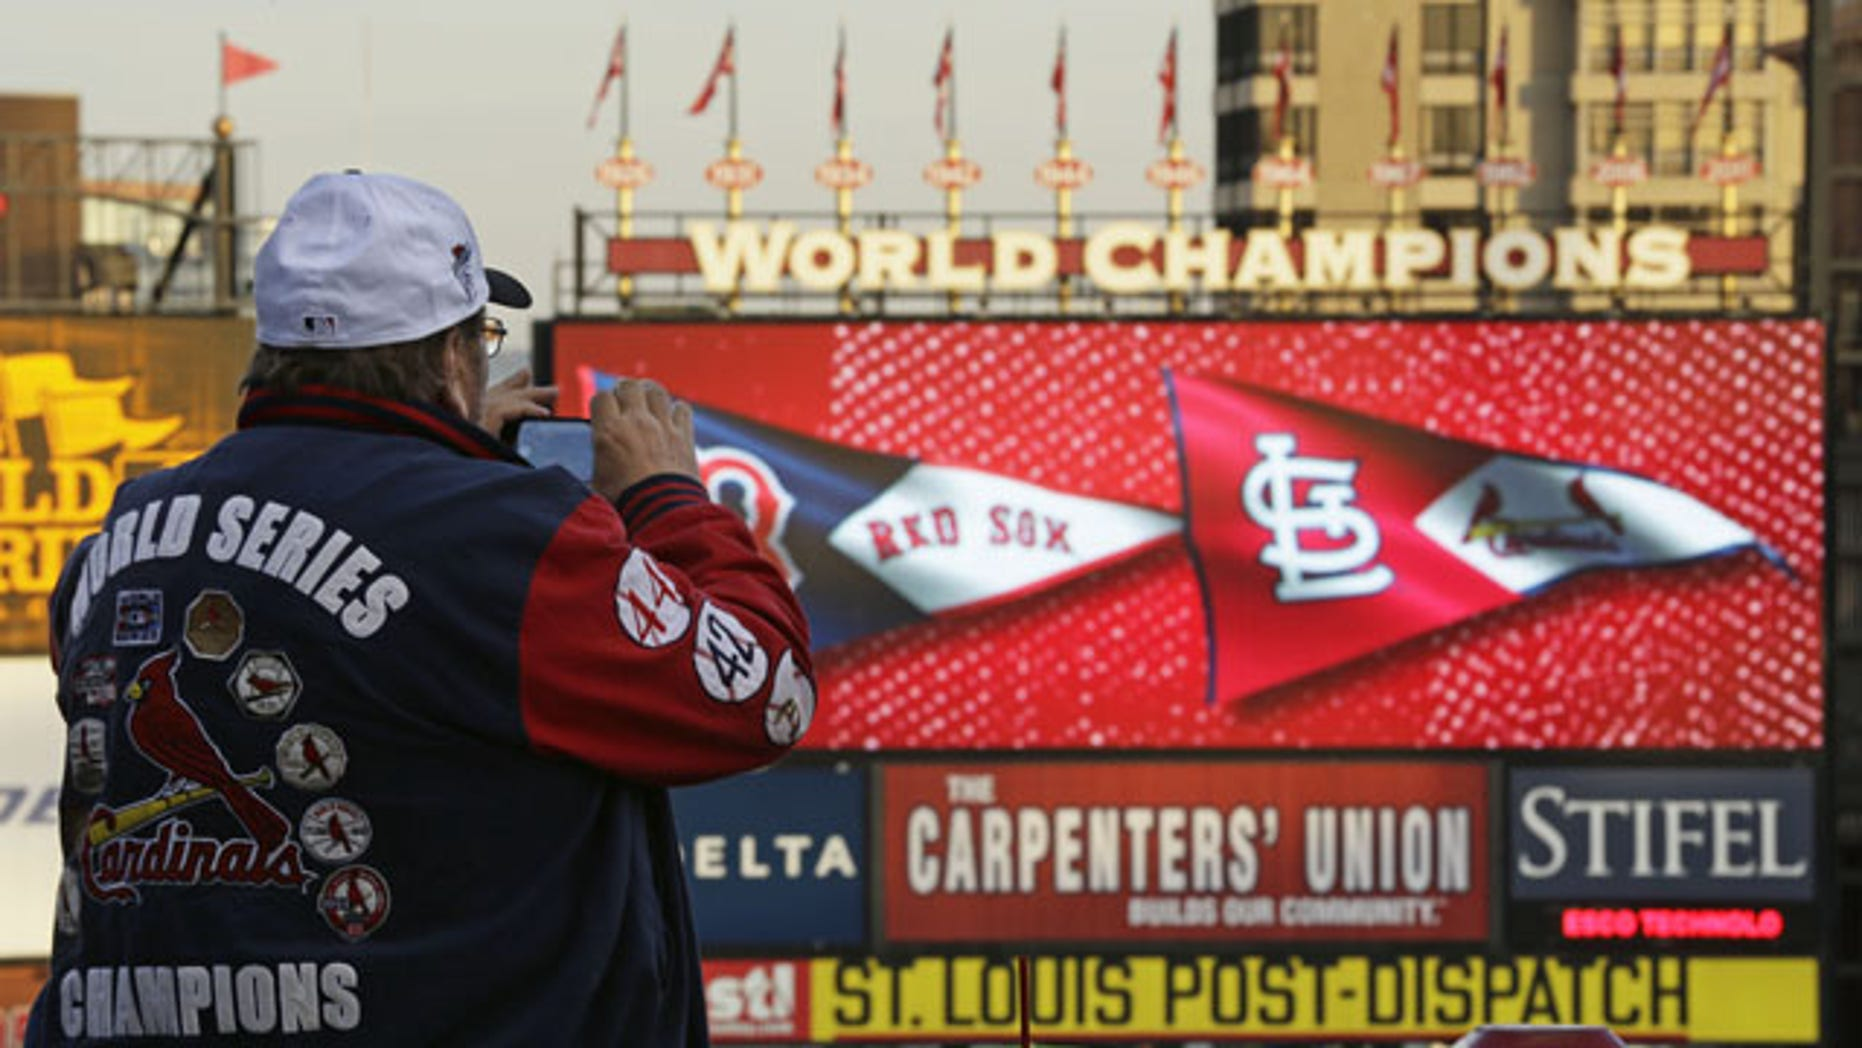 October 28, 2013: John Koenig takes a photo as players warm up for Game 5 of baseball's World Series between the Boston Red Sox and the St. Louis Cardinals in St. Louis. (AP Photo/Charlie Riedel)